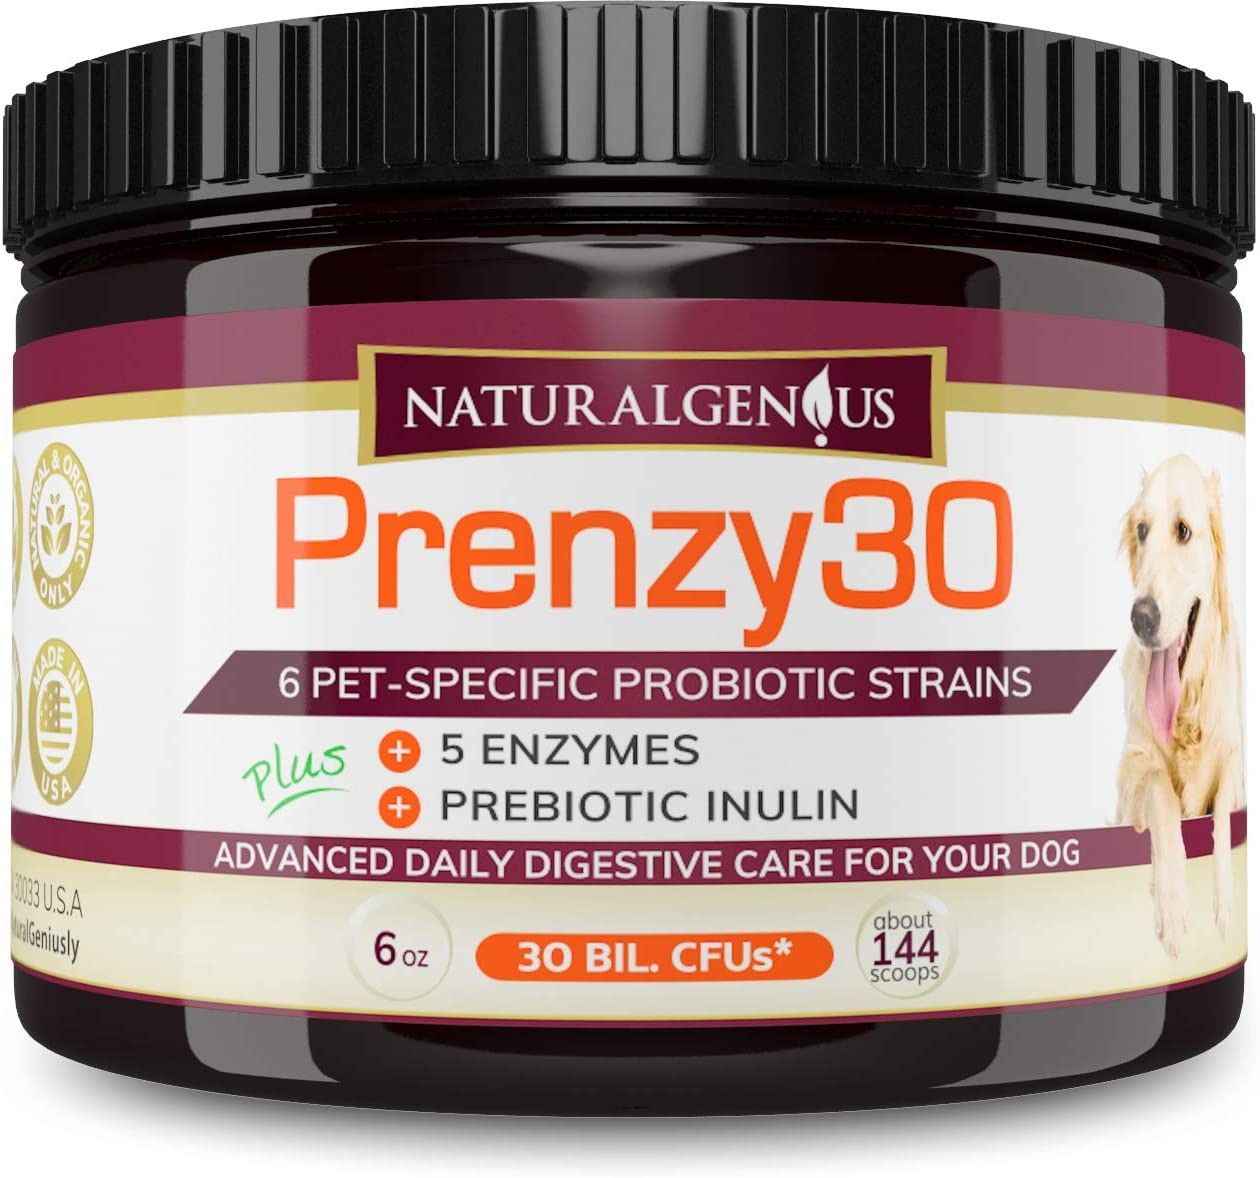 NATURALGENIUS Prenzy30 Probiotics & Enzymes | Fights Dogs Diarrhea, Constipation, Gas, Yeast Infection | Non-GMO Natural Organic for Overall Digestive Health | Made in USA 5-mo Supply